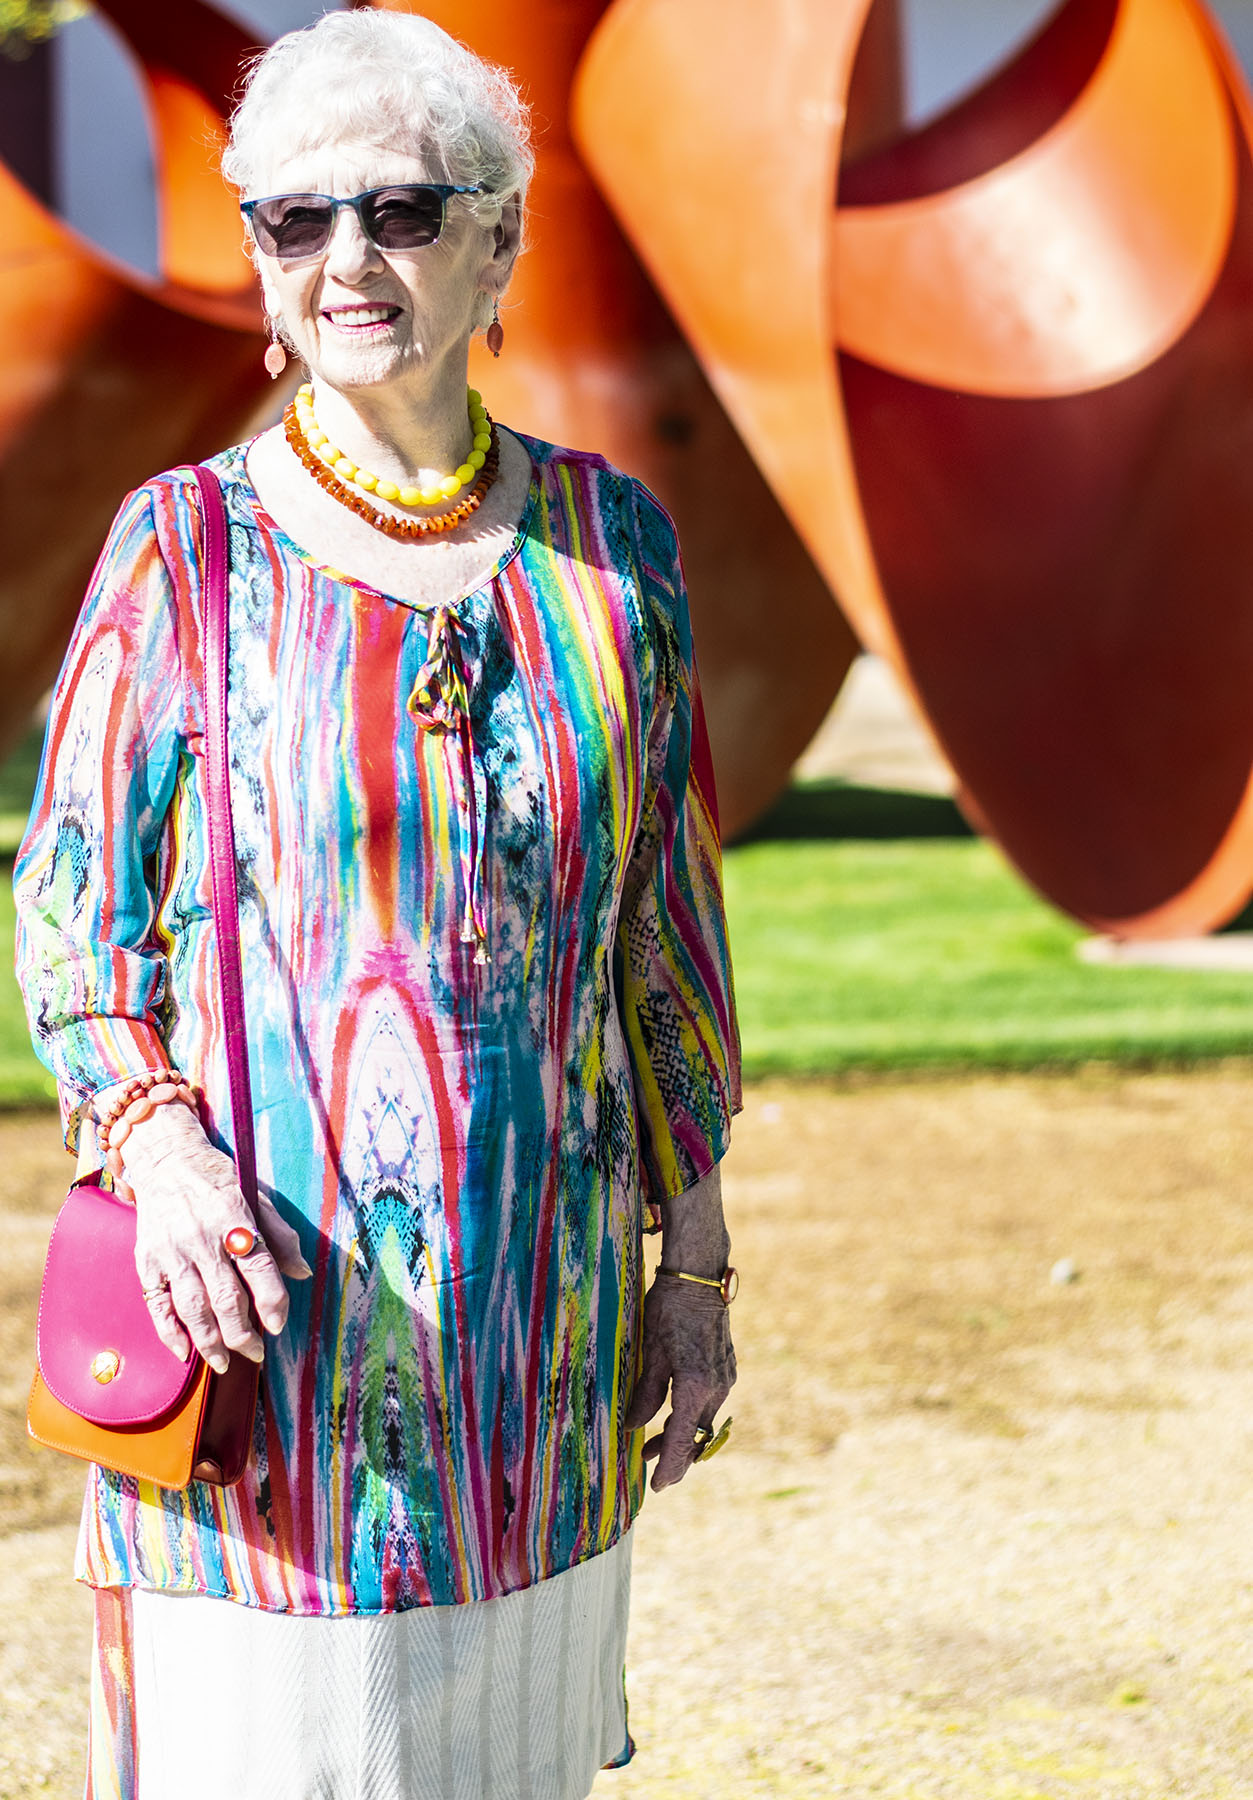 Colorful Summer Style: How to Wear a Tunic Over a Dress